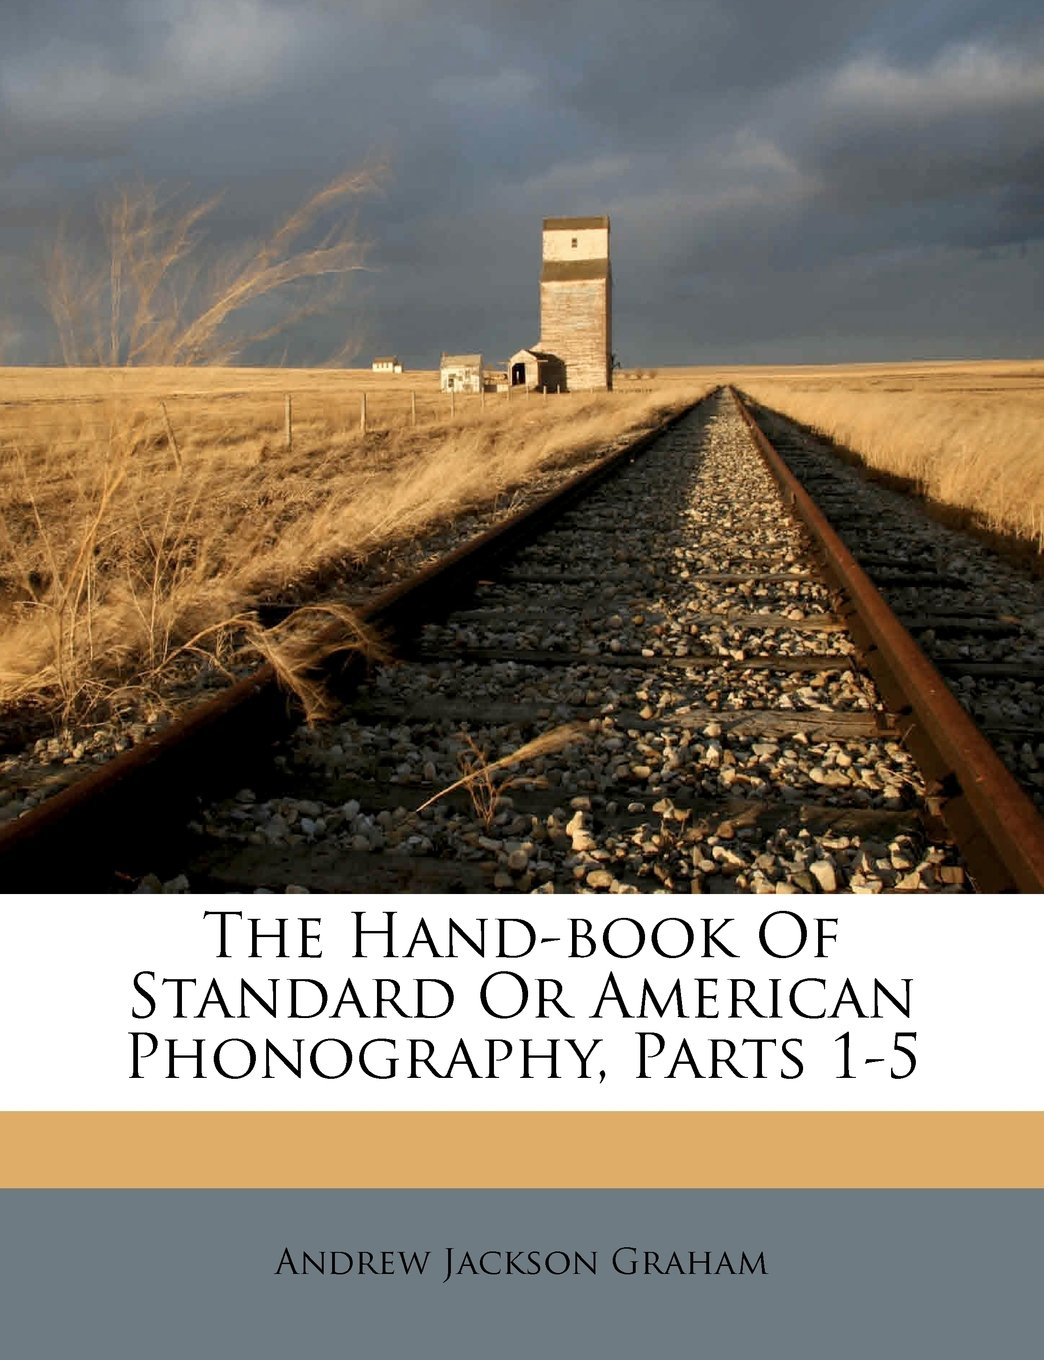 Download The Hand-book Of Standard Or American Phonography, Parts 1-5 pdf